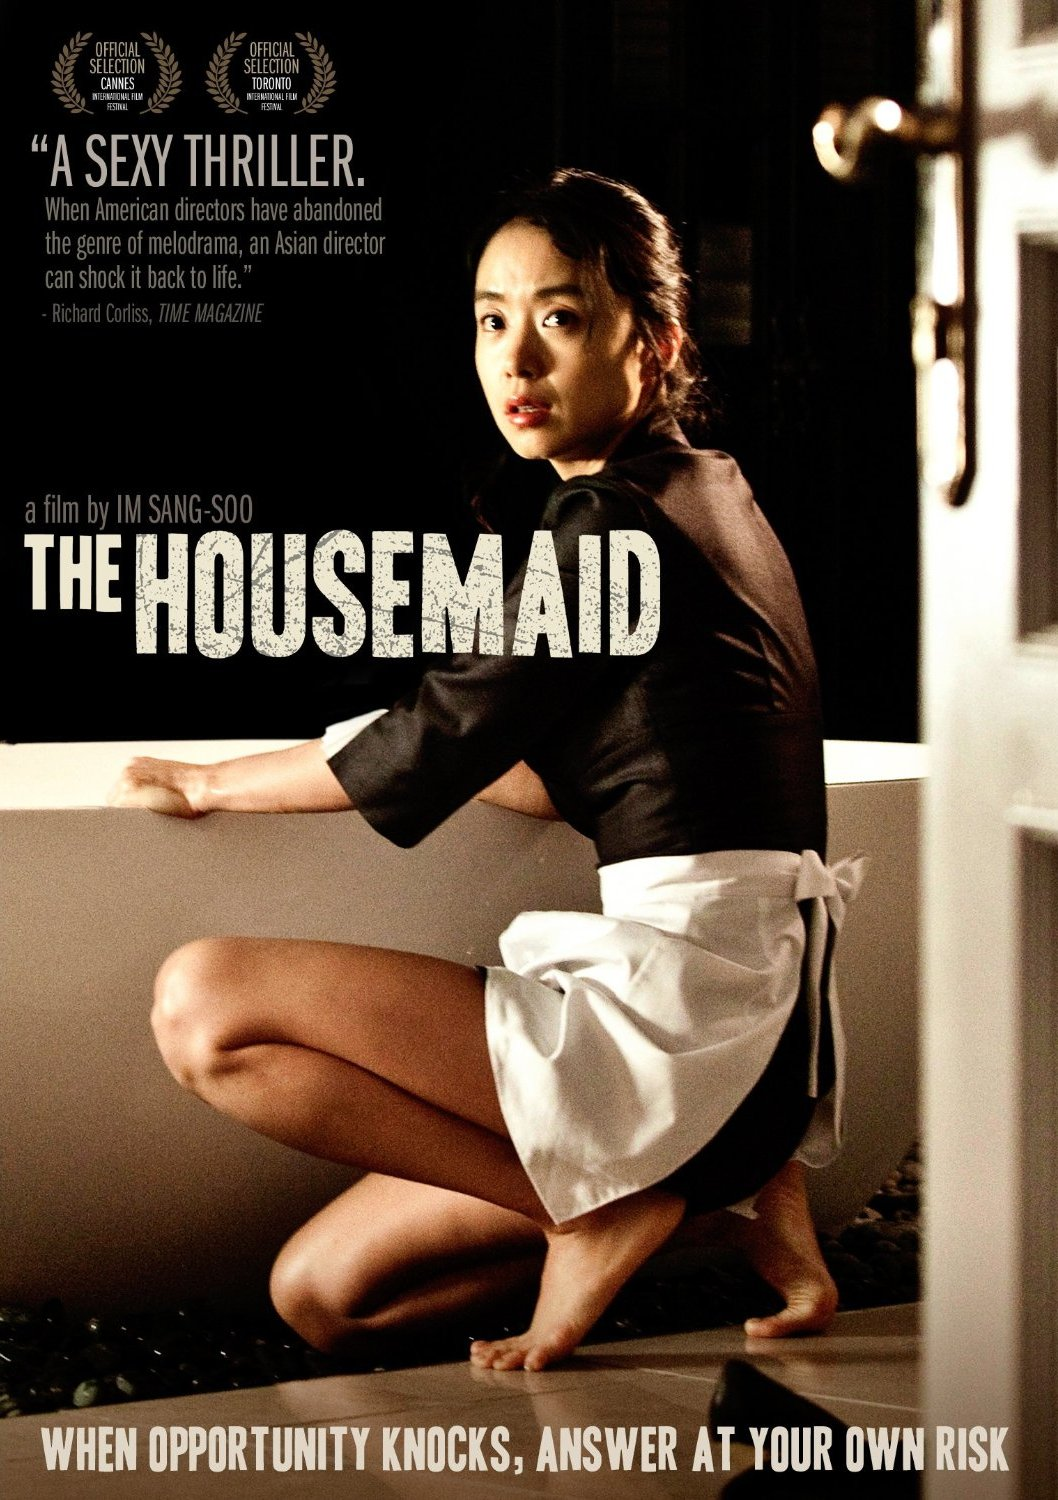 Film Izle Yeti Kin The Housemaid Erotic Seyret